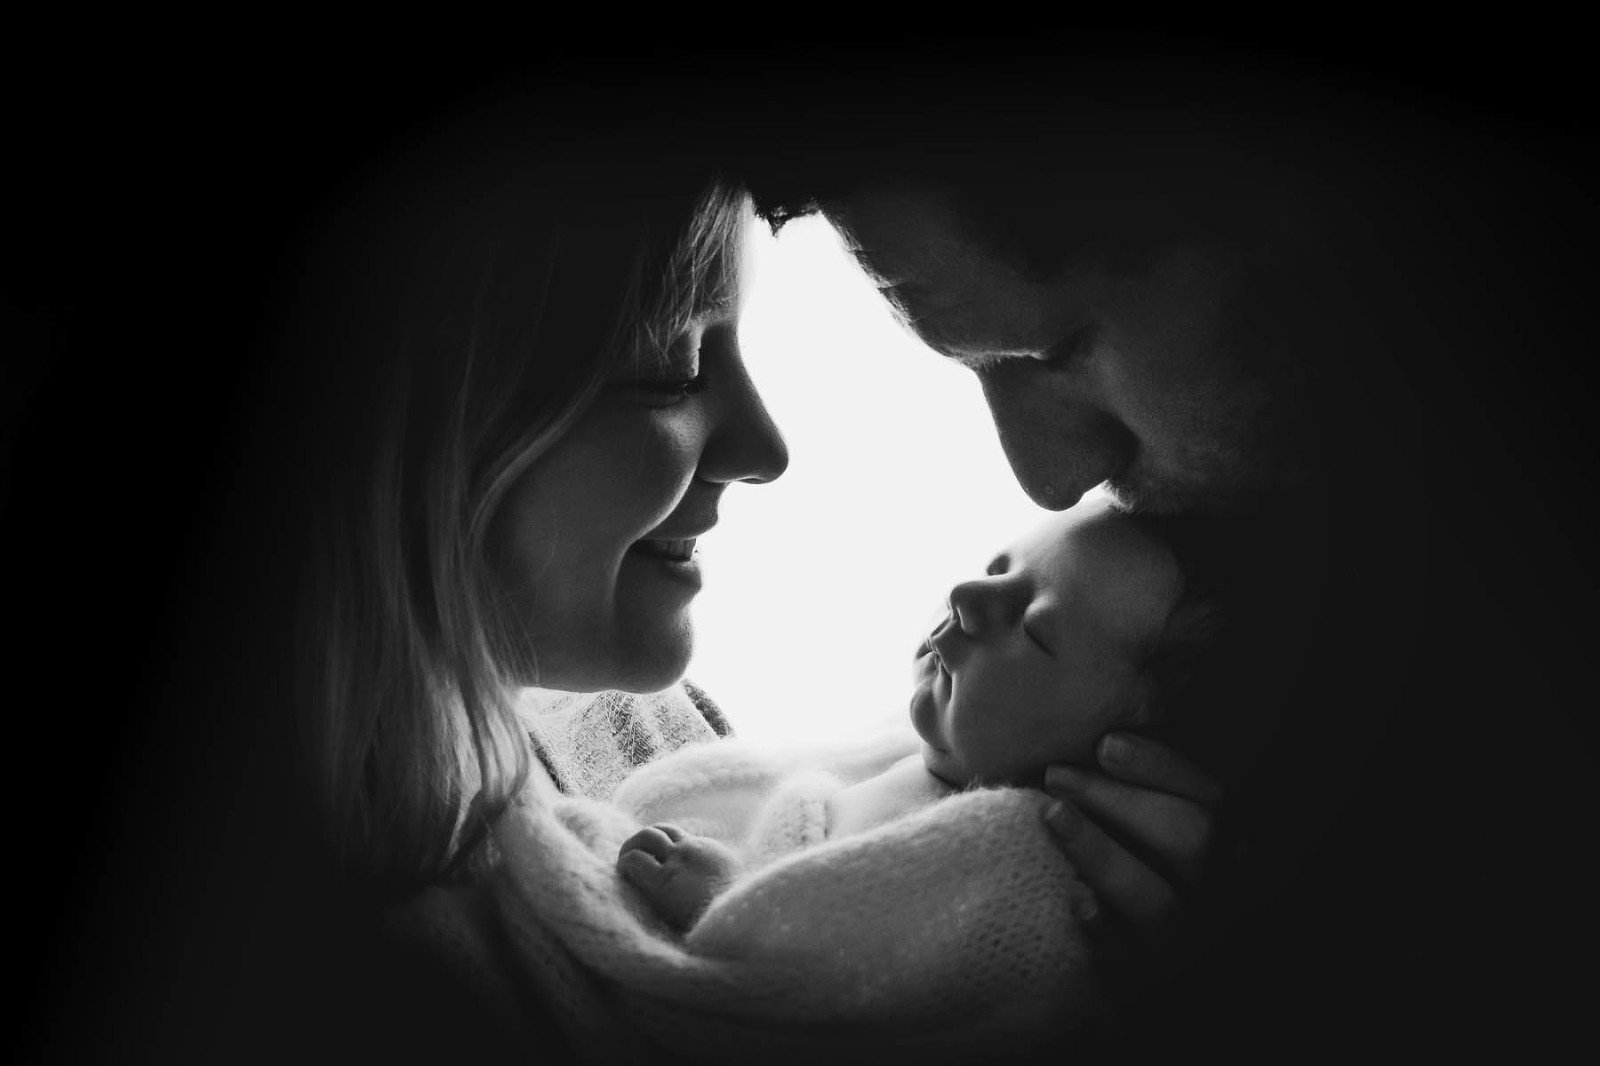 newborn family portrait, mum, dad, baby, black and white